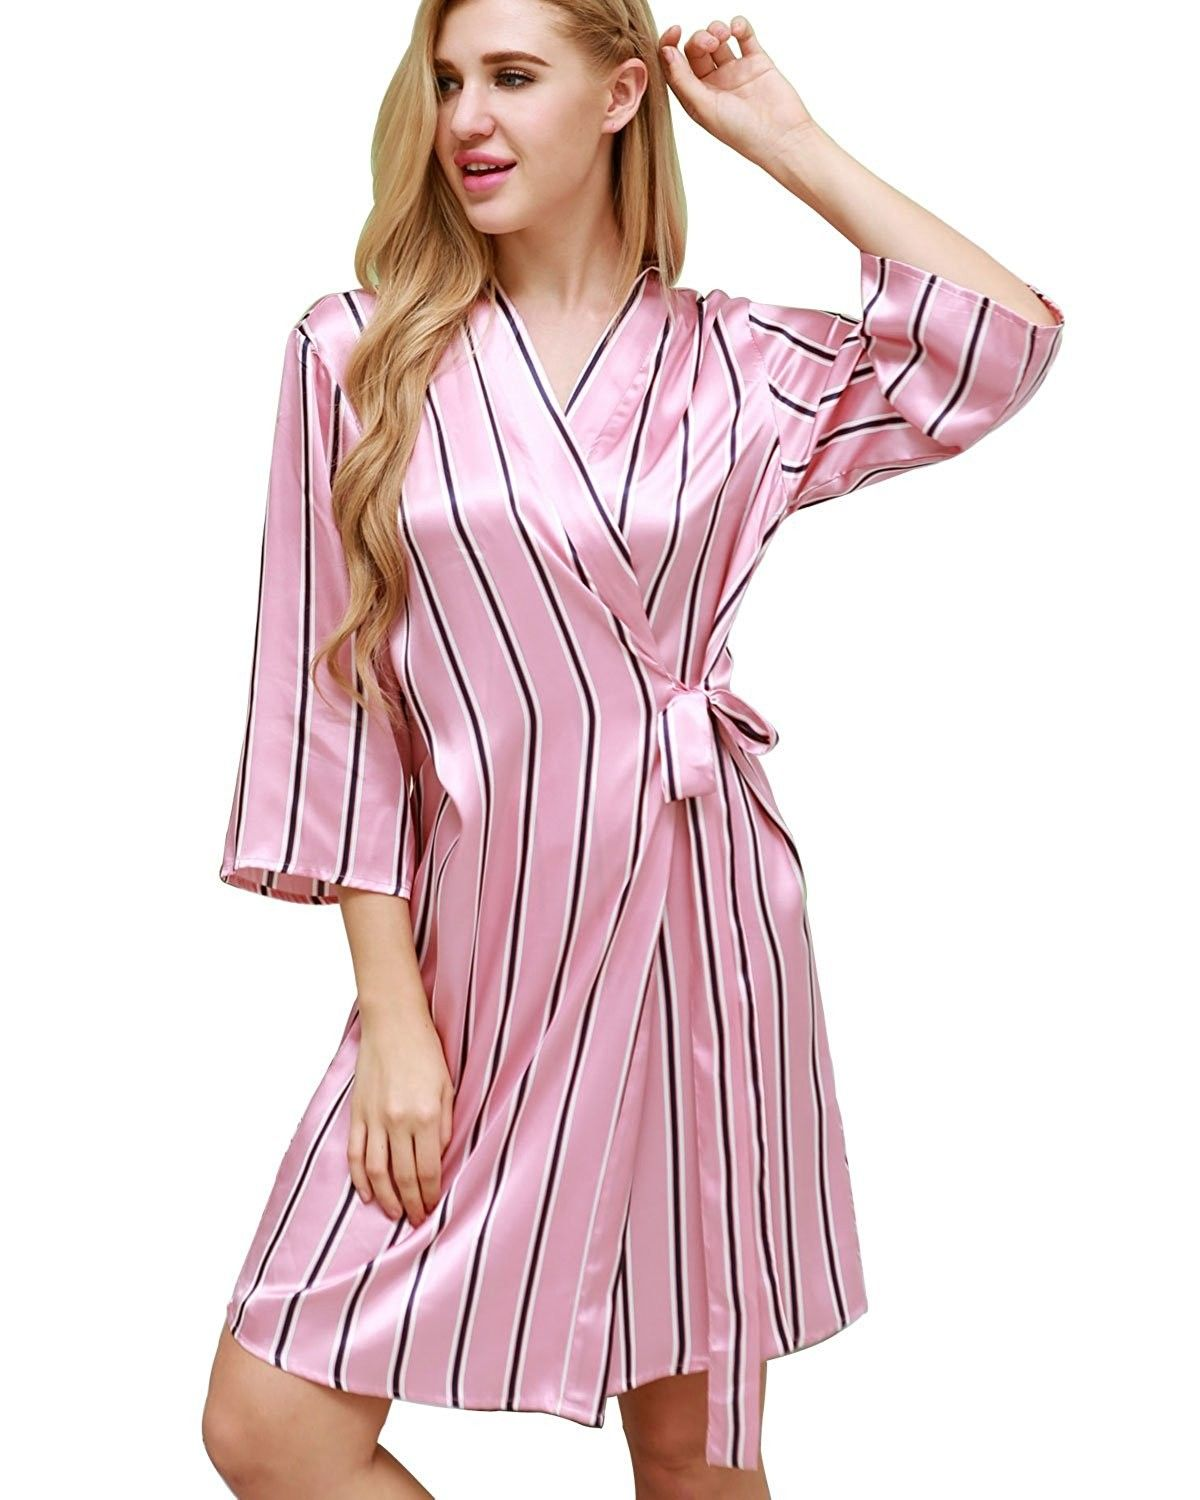 4c66af0b1 Women's Short Robe Satin Kimono Bathrobes Sleepwear S-XL - Pink Black  Stripe - CE182708A5Z,Women's Clothing, Lingerie, Sleep & Lounge, Sleep &  Lounge, Robes ...